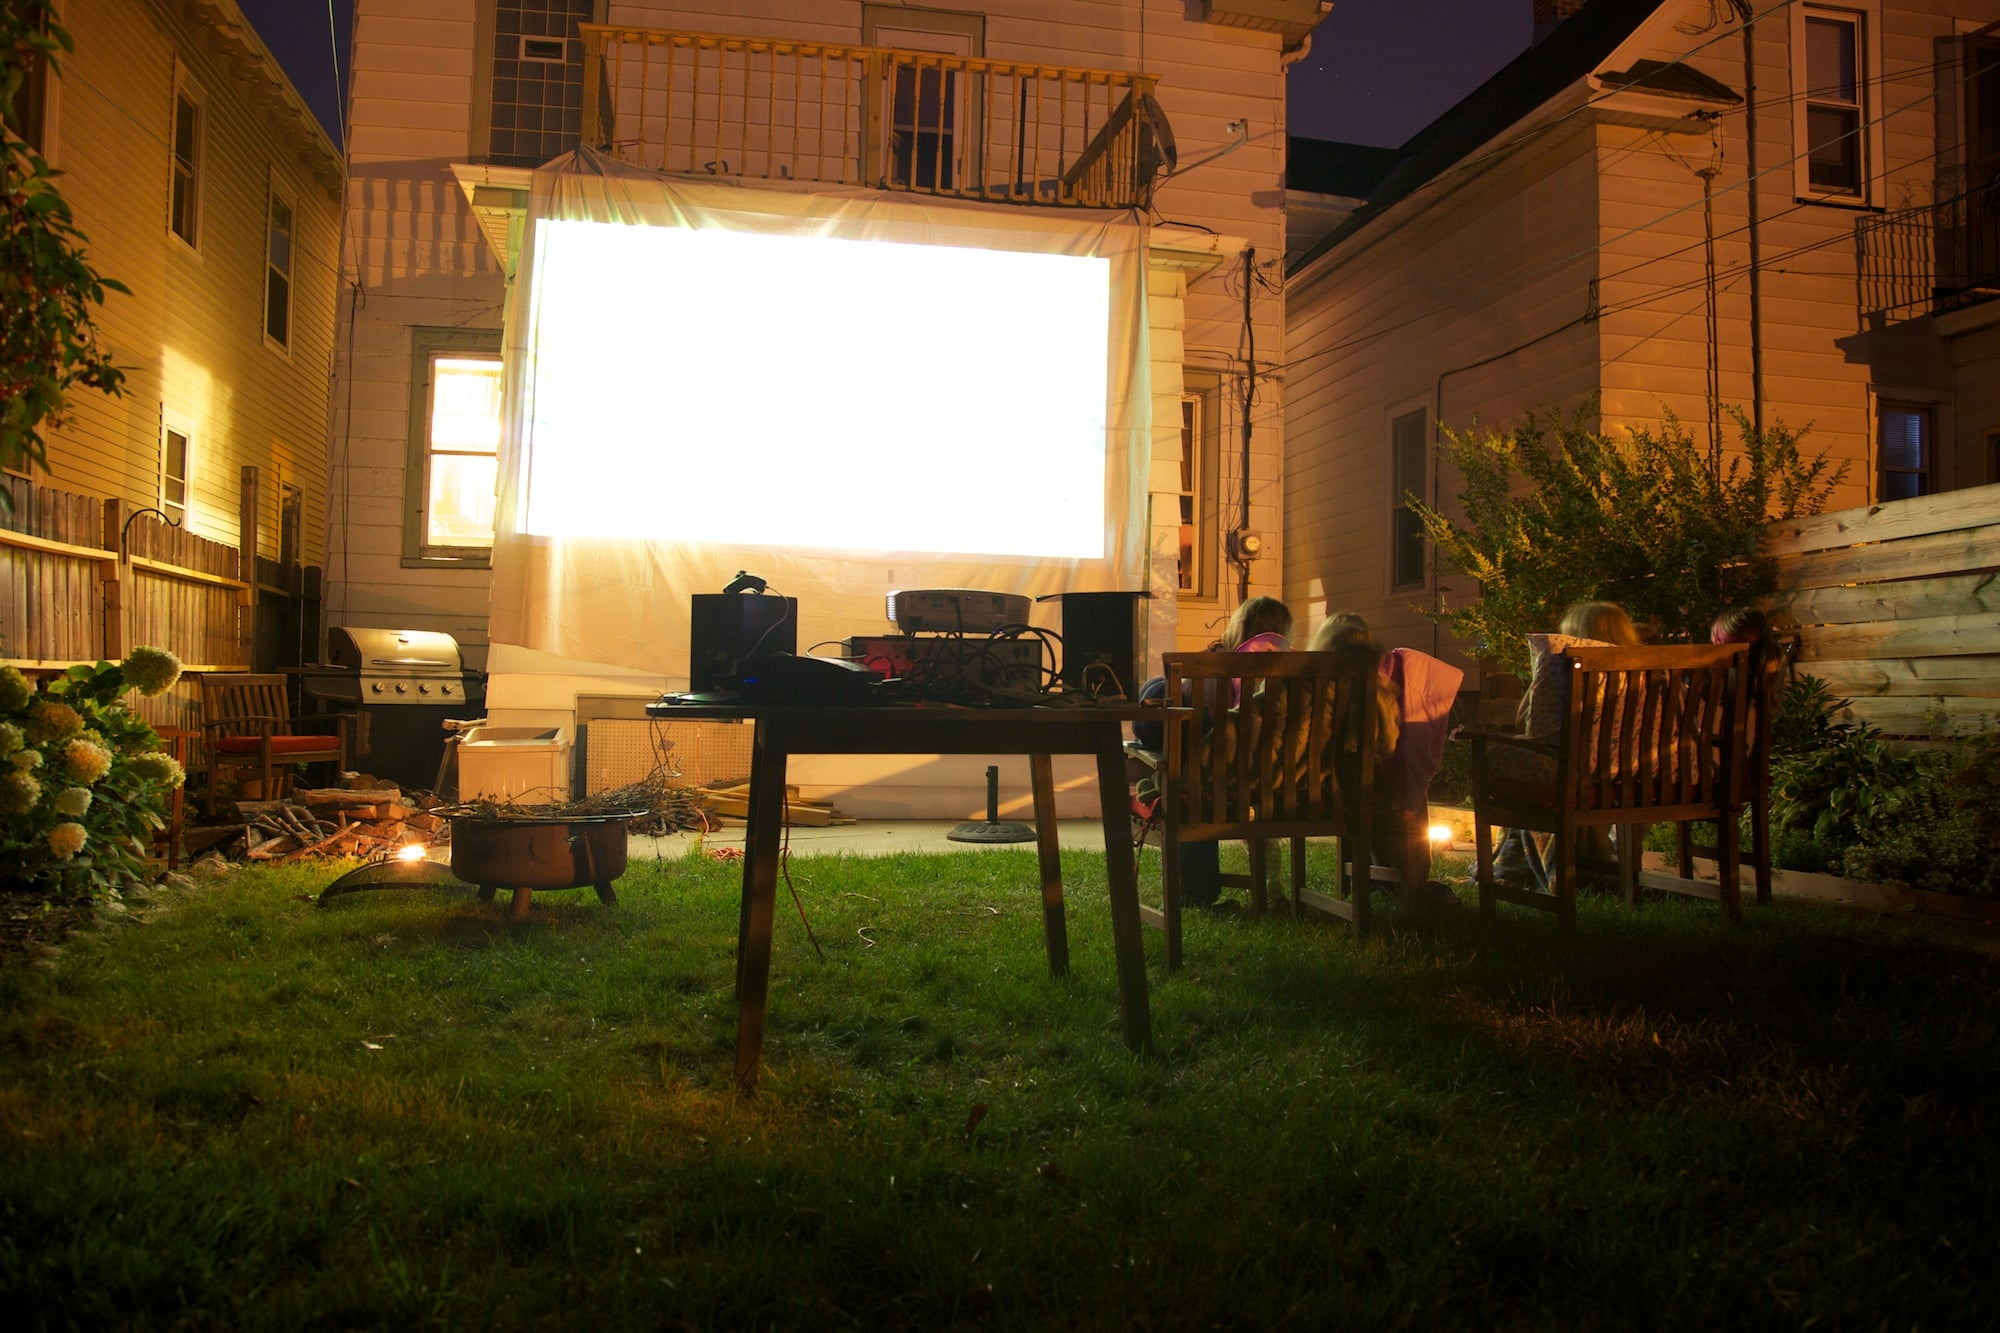 & How to Project a Movie Outside | POPSUGAR Tech azcodes.com